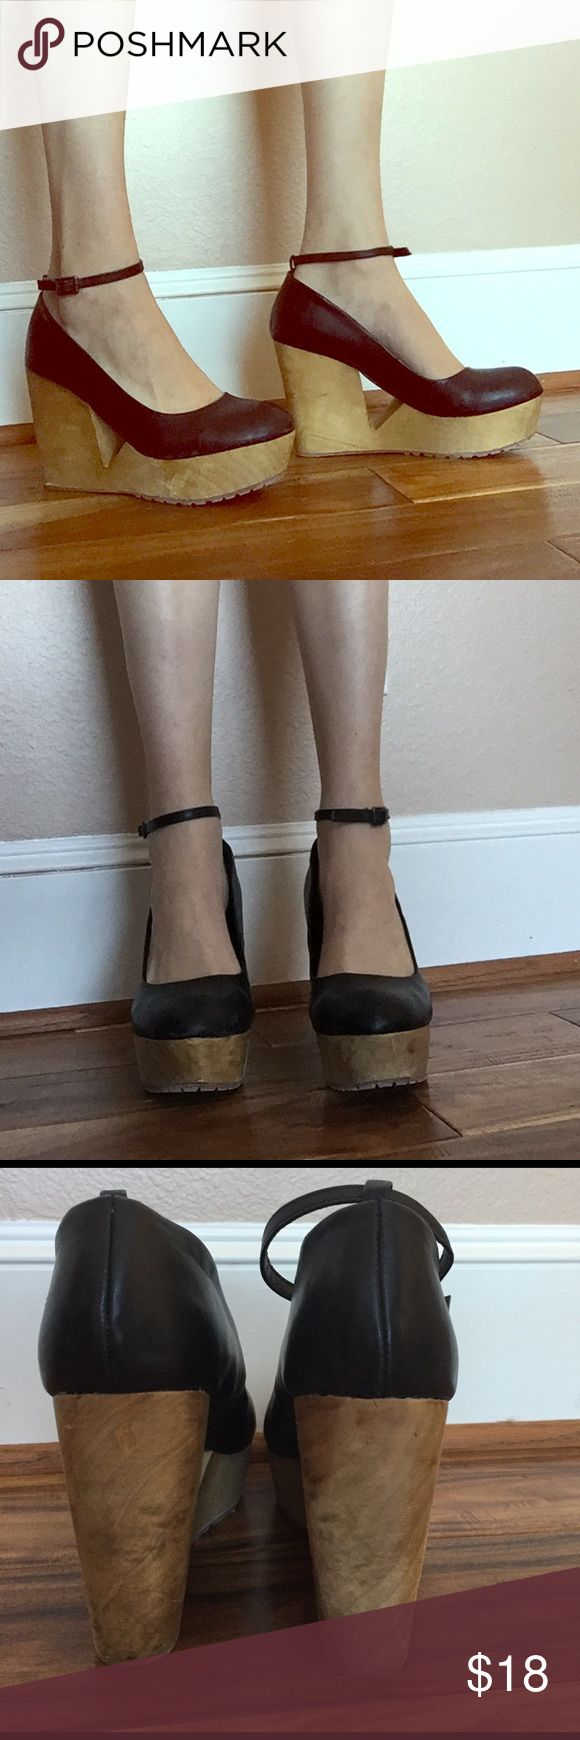 Wooden cutout platforms with ankle strap Deena&Ozzy wooden platforms w triangular cutout & ankle strap. Very comfortable !! Size 10. The wooden platform has a few scratches but they are in pretty good condition Deena & Ozzy Shoes Platforms